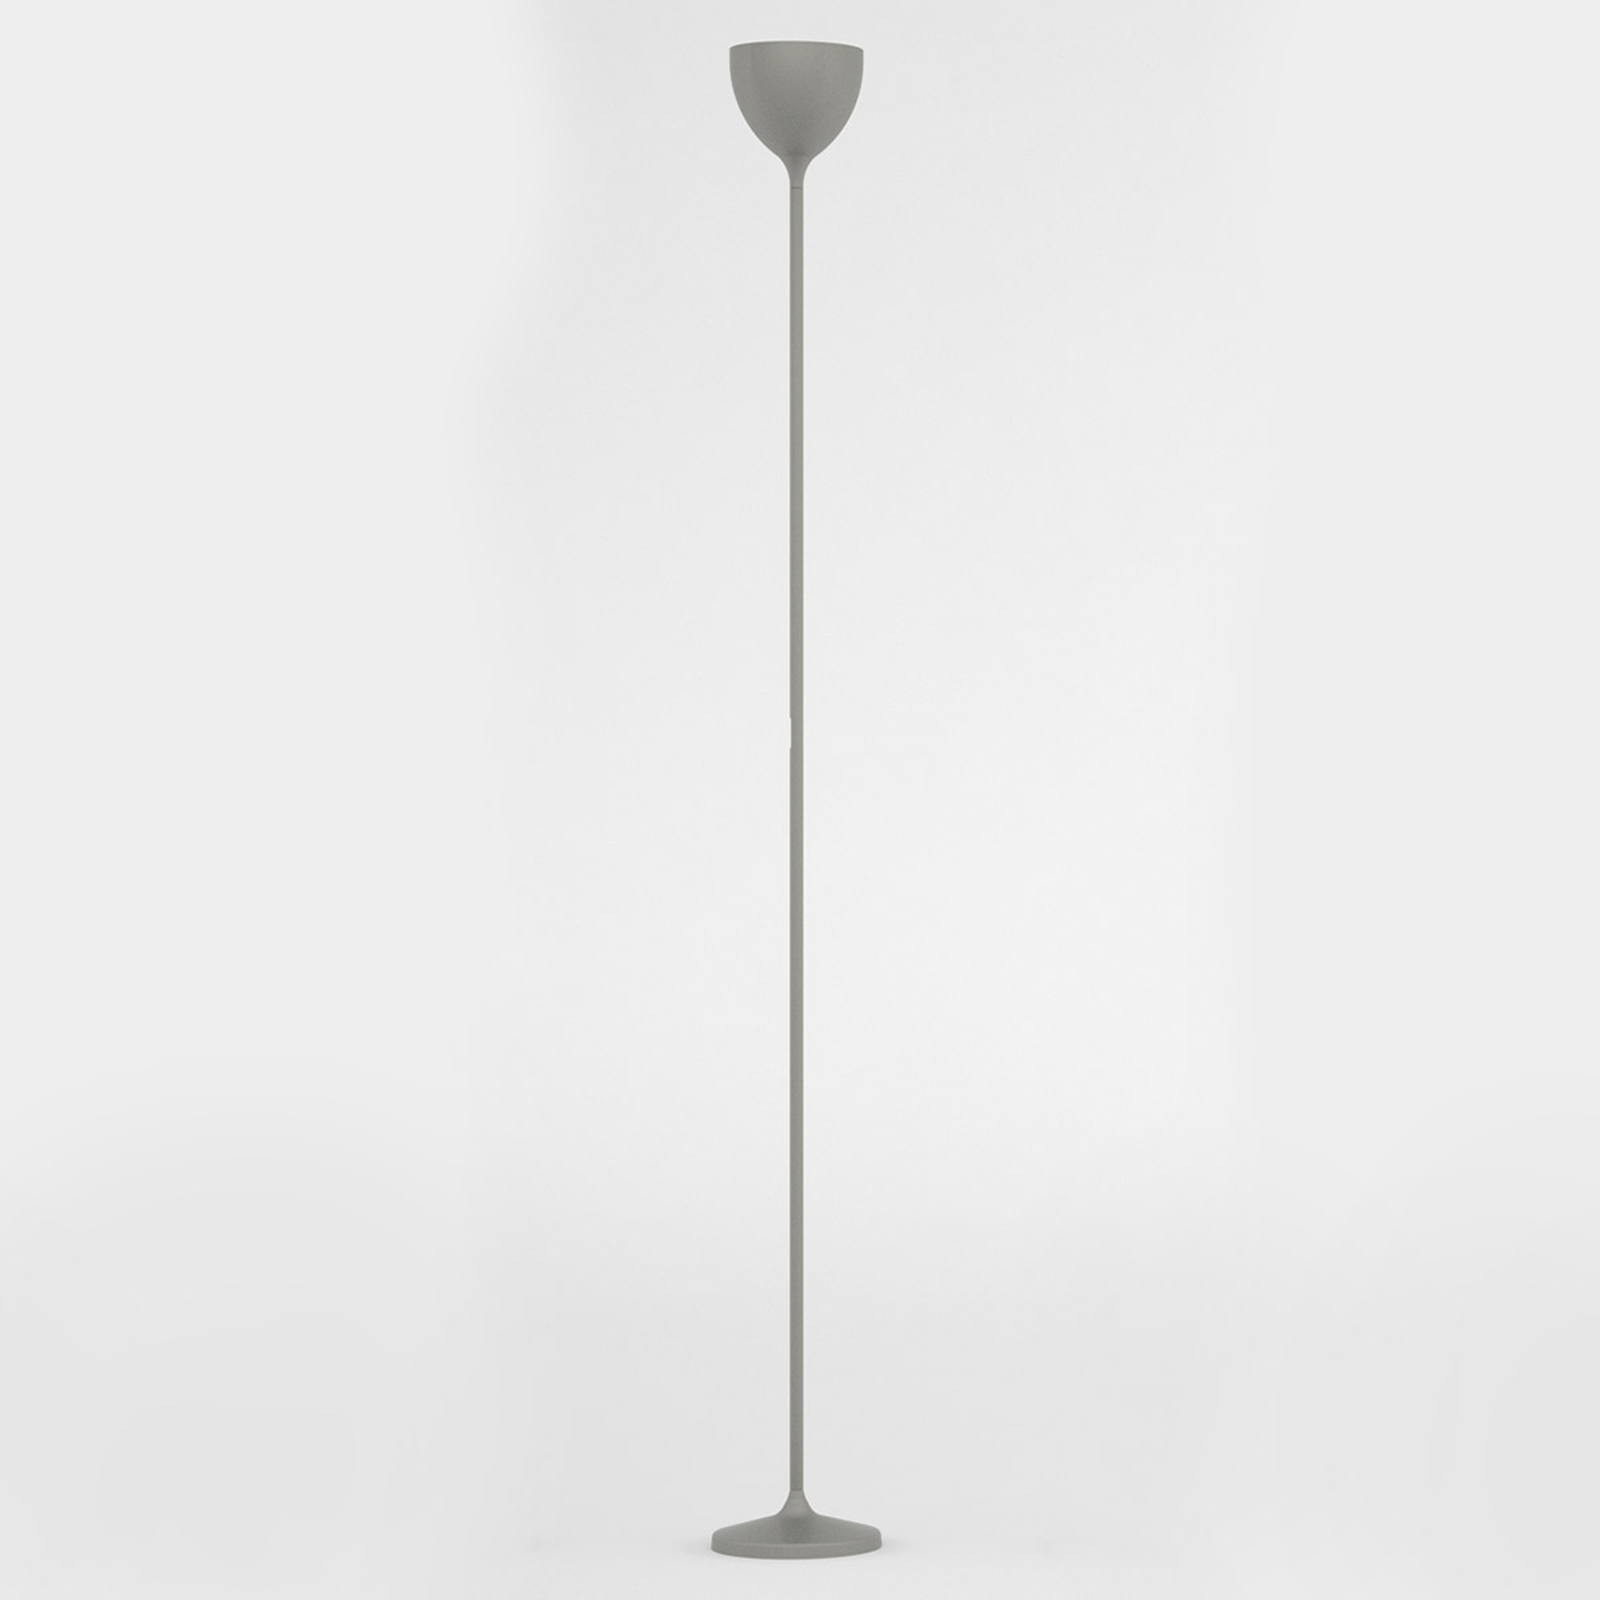 Rotaliana Drink LED-Stehleuchte, graphit